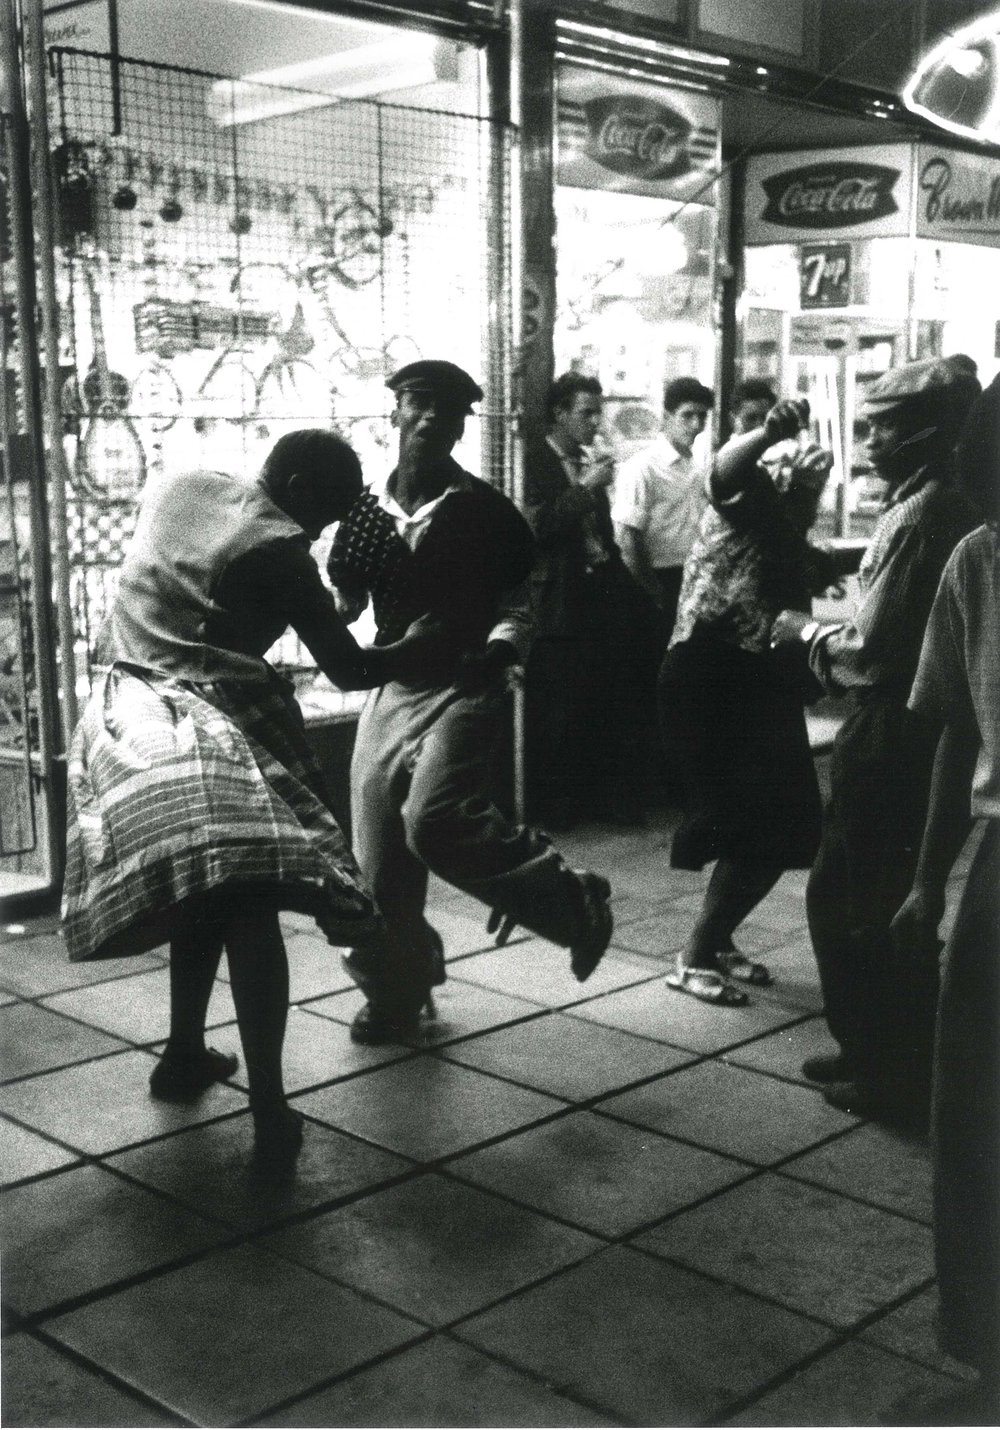 1960 – With no place to go for entertainment after work, black servants of white flats in Hilbrow, Johannesburg, dancing in the streets at night   Courtesy of the Estate of John Goldblatt